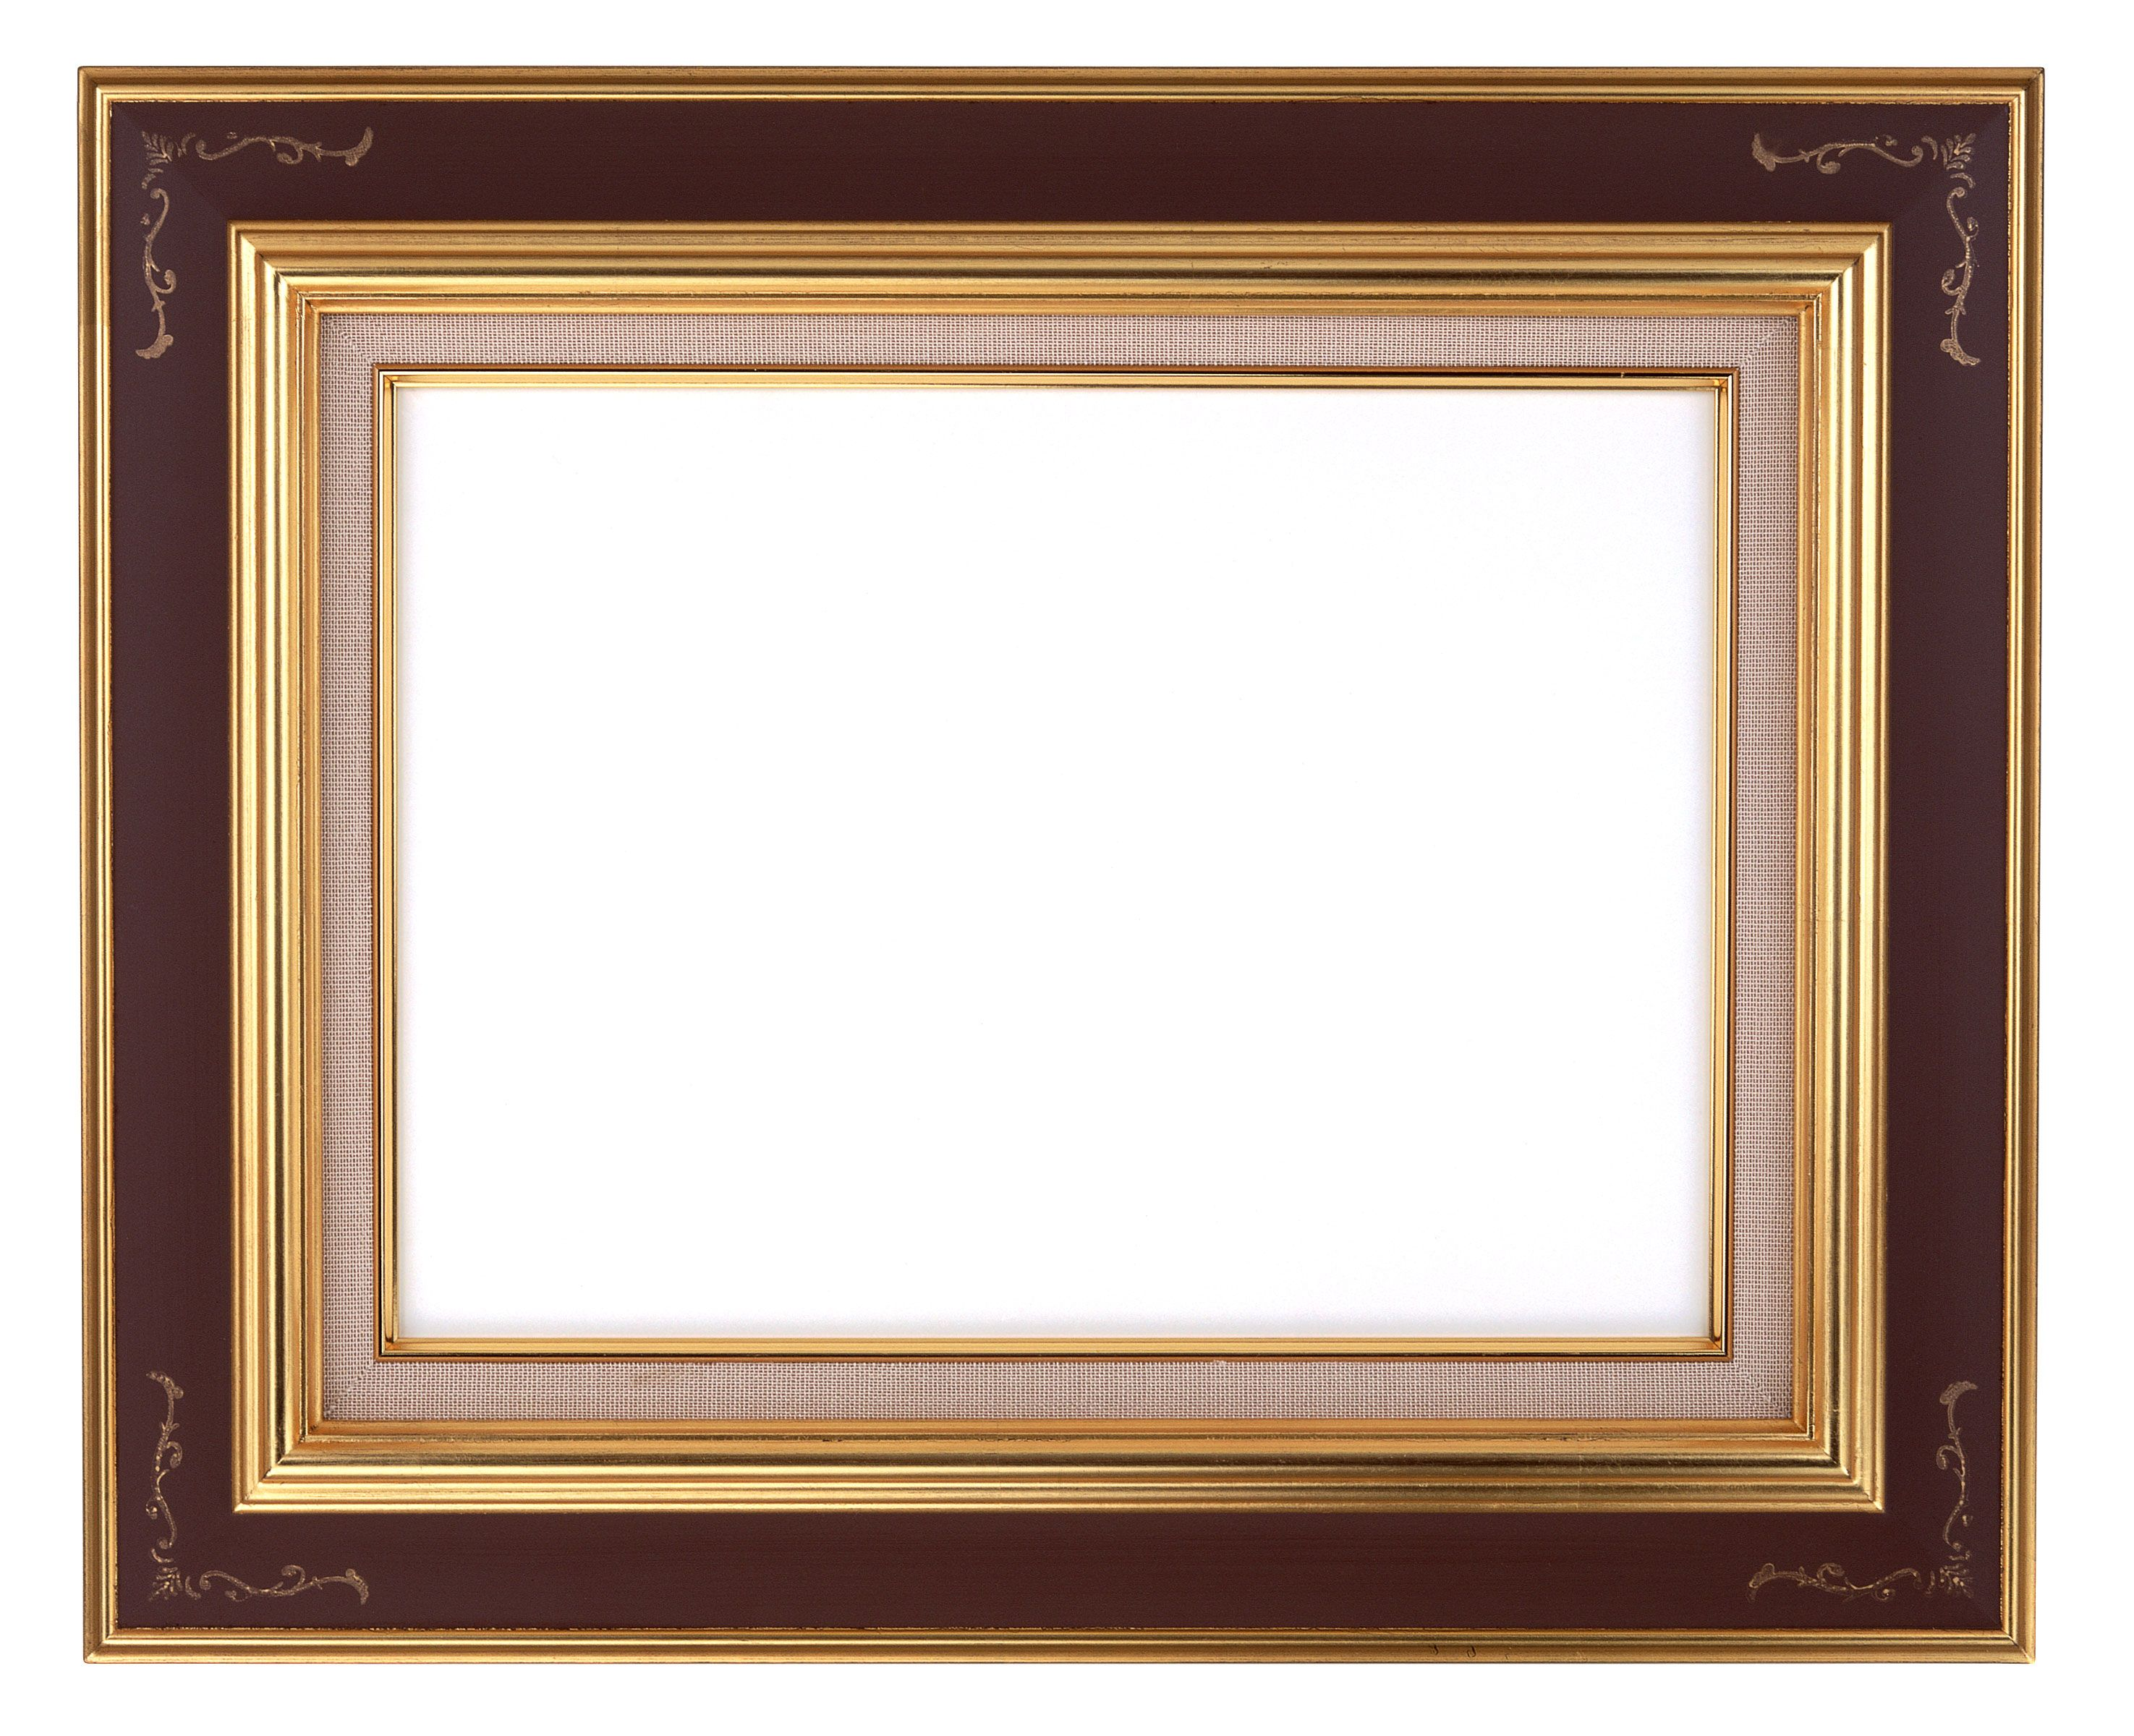 Photoshop Borders And Frames - Matted Picture Frame